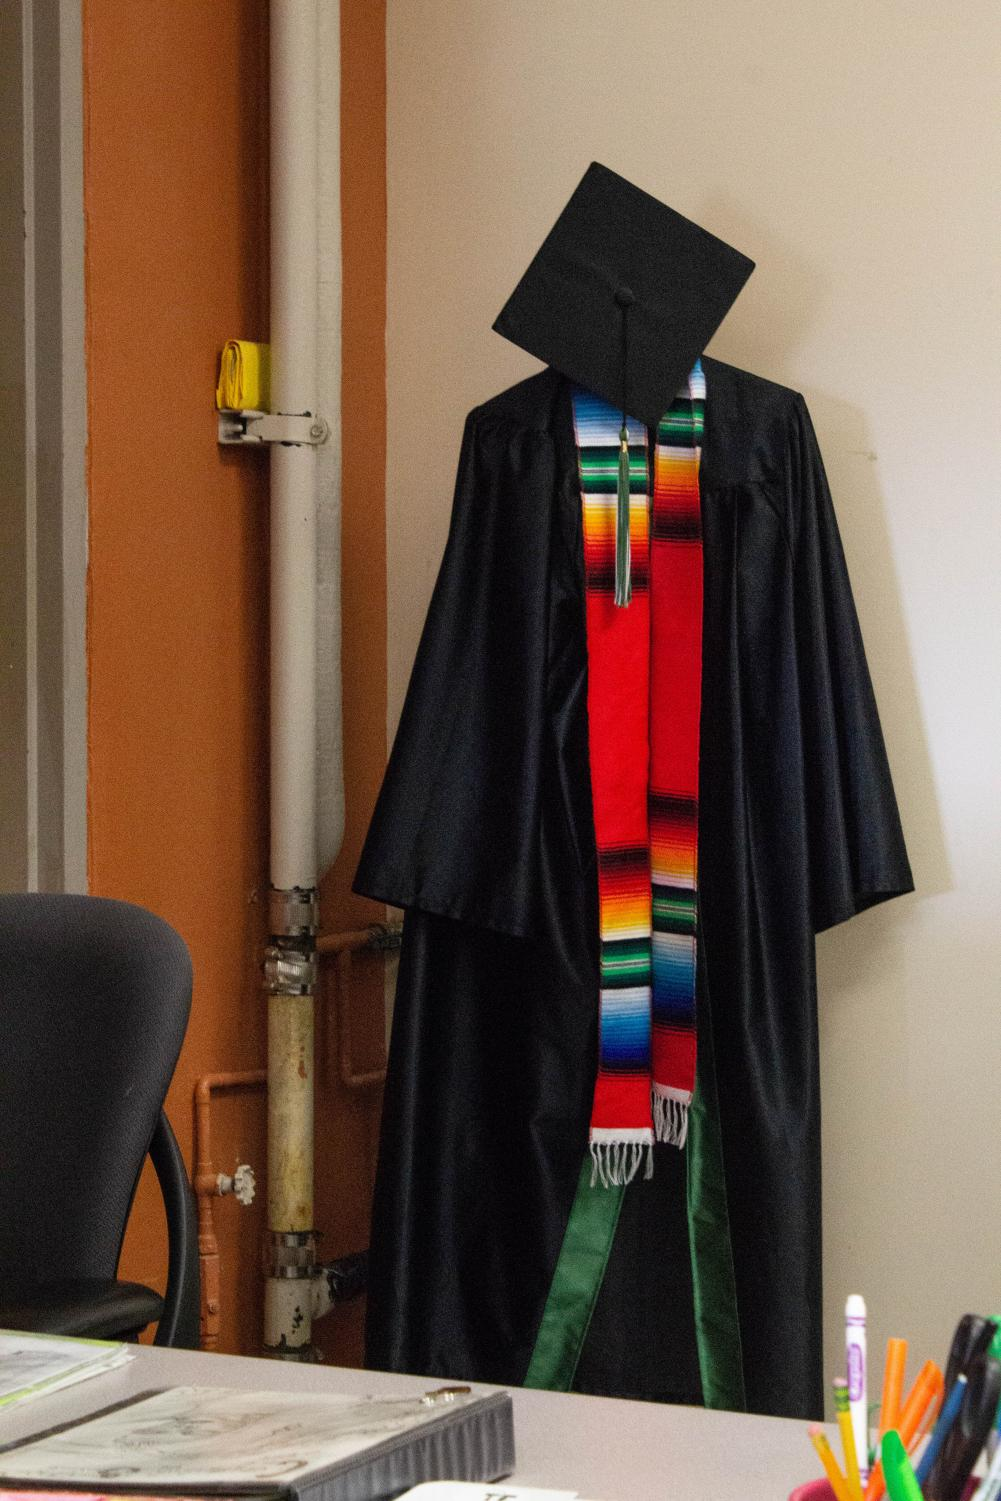 When CE2 students graduate early, they get to put on the cap and gown and have their photos taken. They can also return to walk with the rest of the class at graduation.